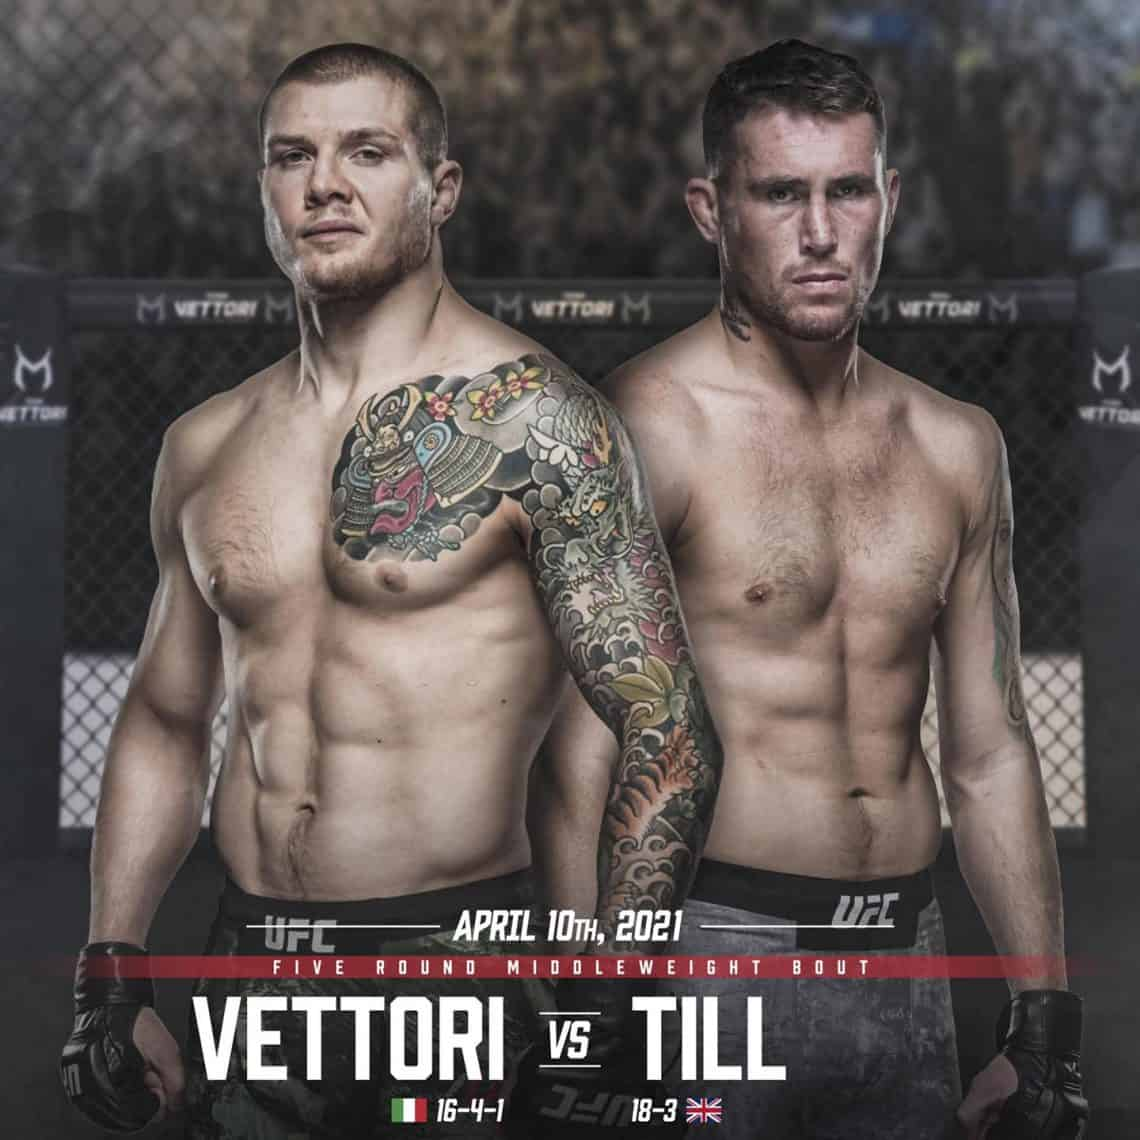 UFC Fight Night 188: Marvin Vettori vs Till 1